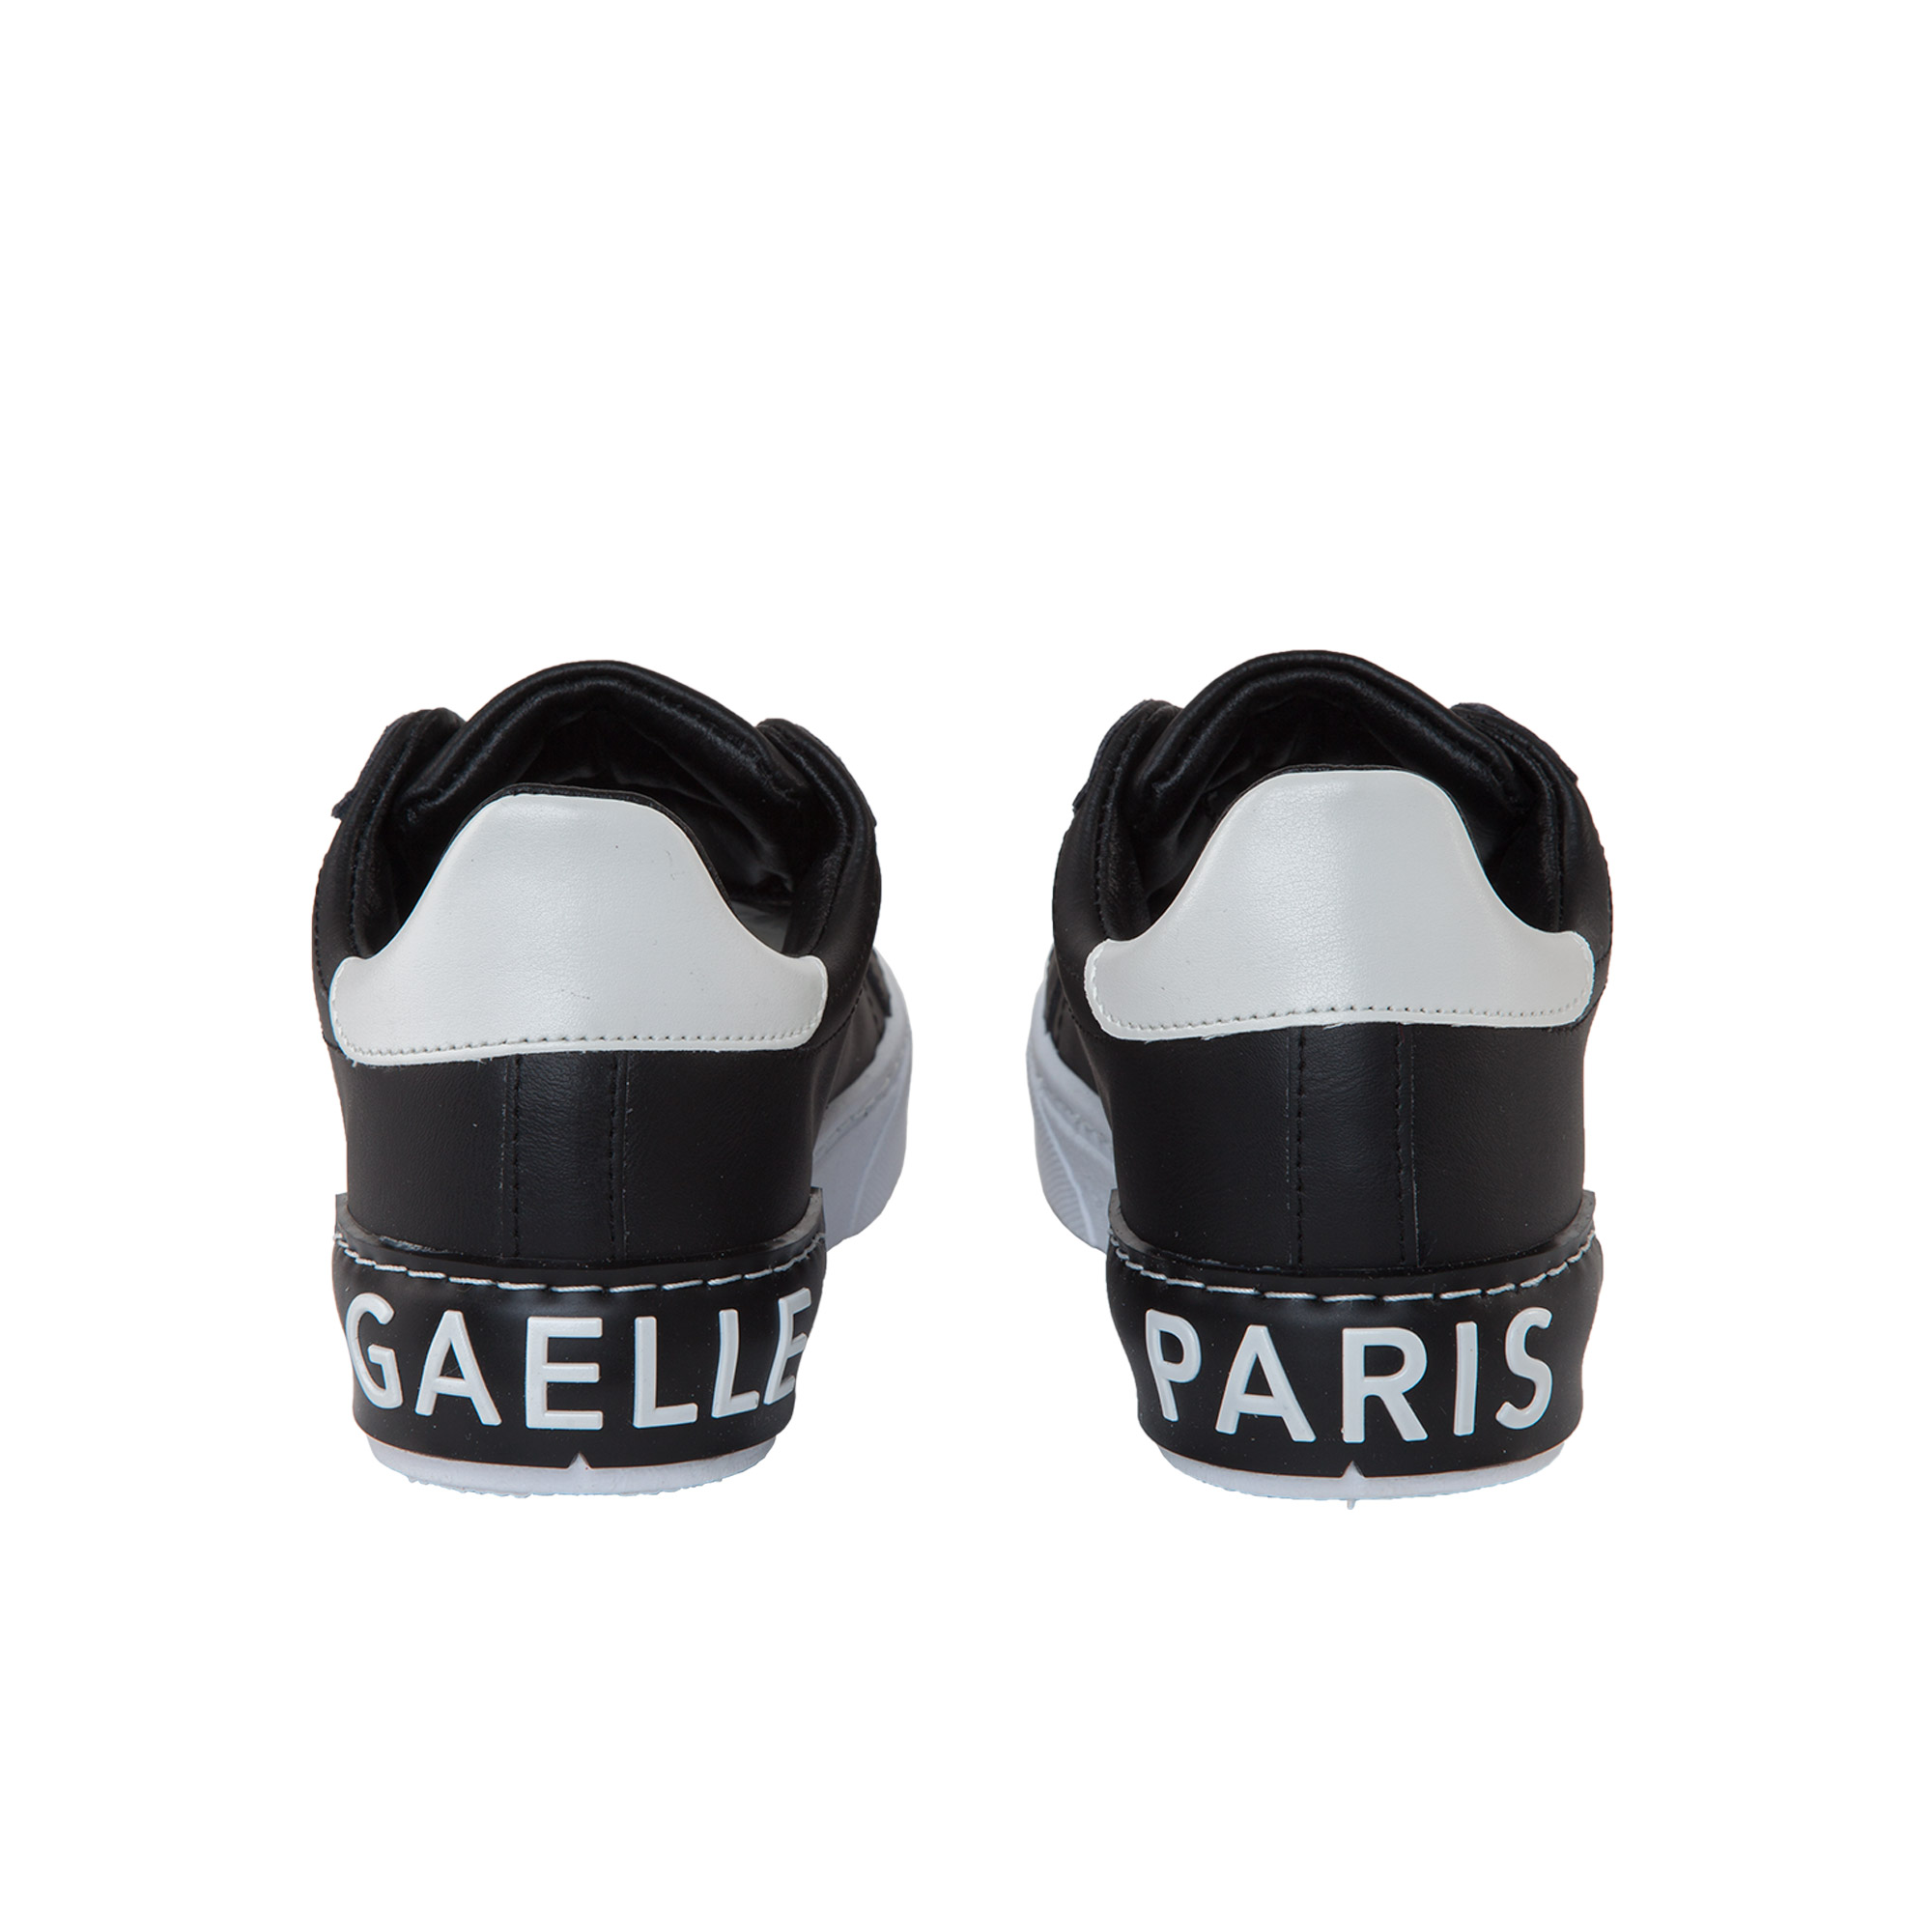 SNEAKERS - GBDA1311 - GAELLE PARIS